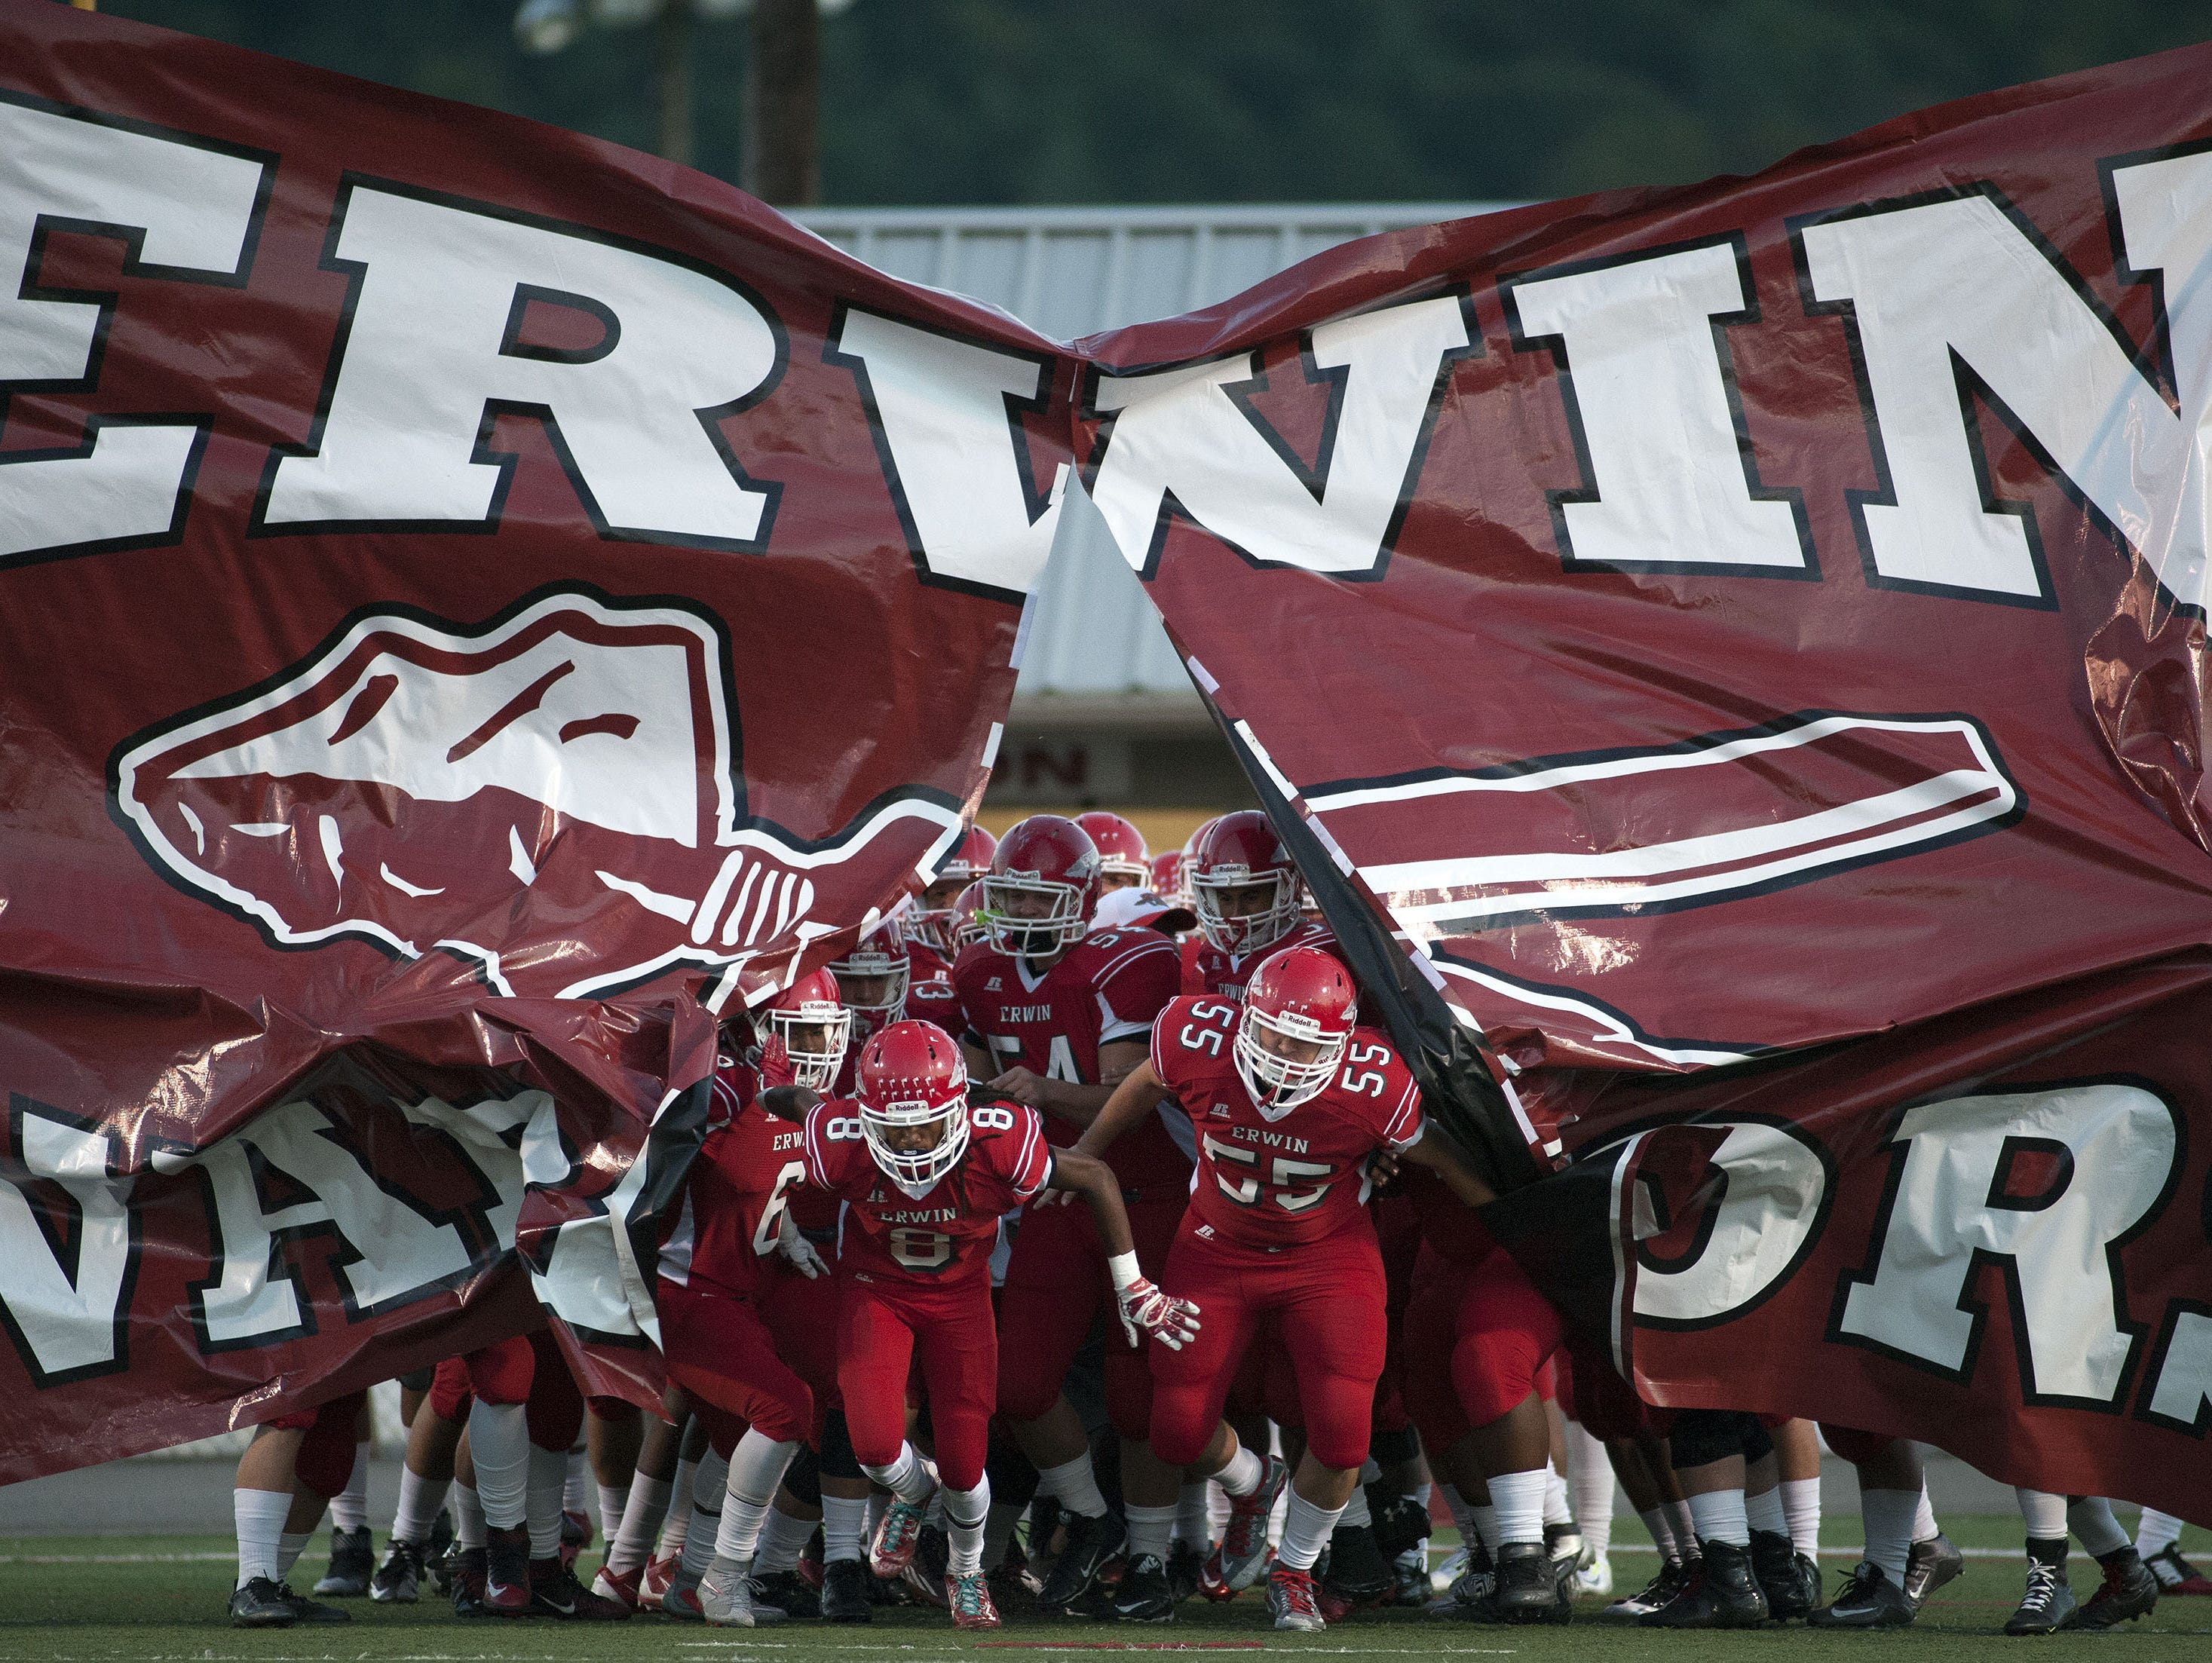 Erwin is home for Friday's Mountain Athletic Conference football opener against Reynolds.